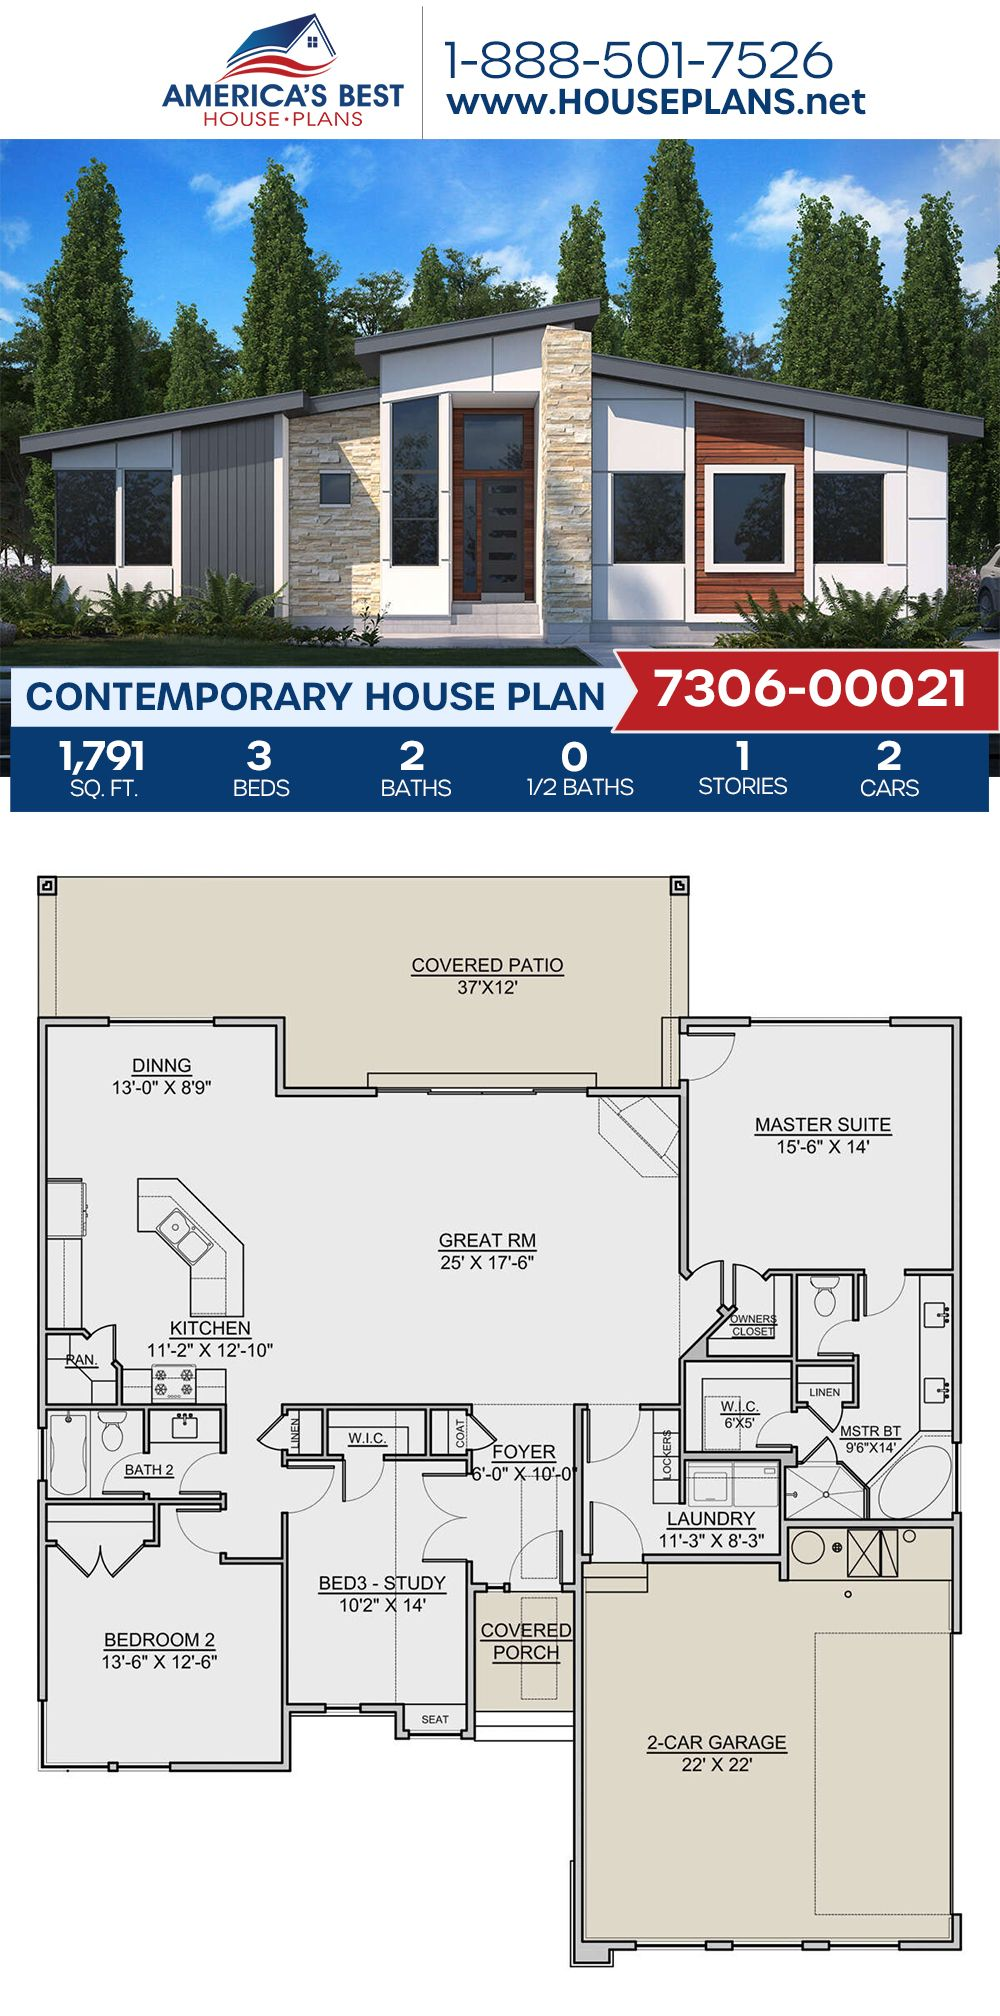 House Plan 7306 00021 Contemporary Plan 1 791 Square Feet 3 Bedrooms 2 Bathrooms House Plans Contemporary House Plans Dream House Plans